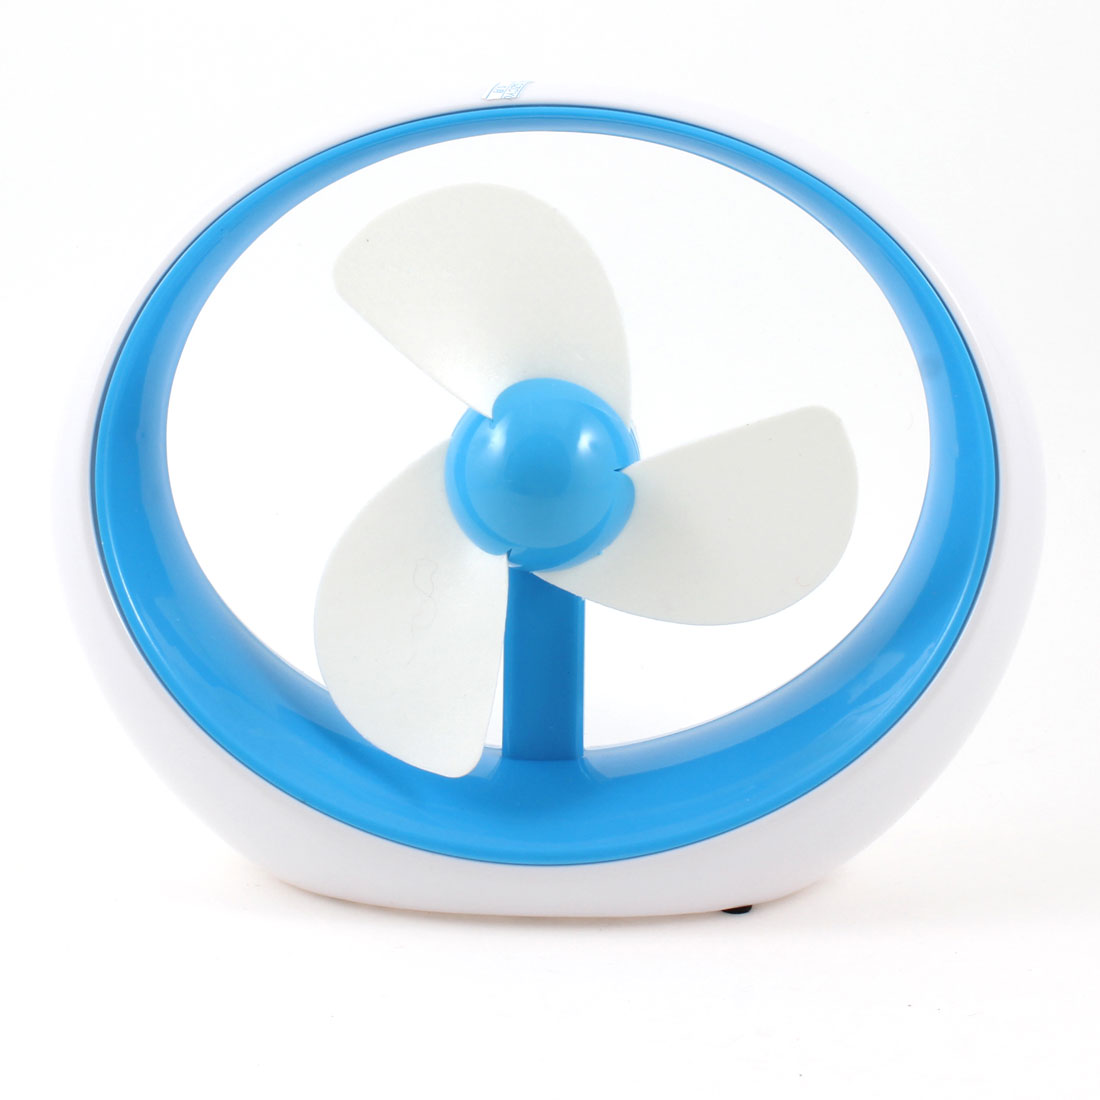 Sky Blue White Round Shape 3 Foam Cutters Desktop Mini USB Desk Fan Cooler